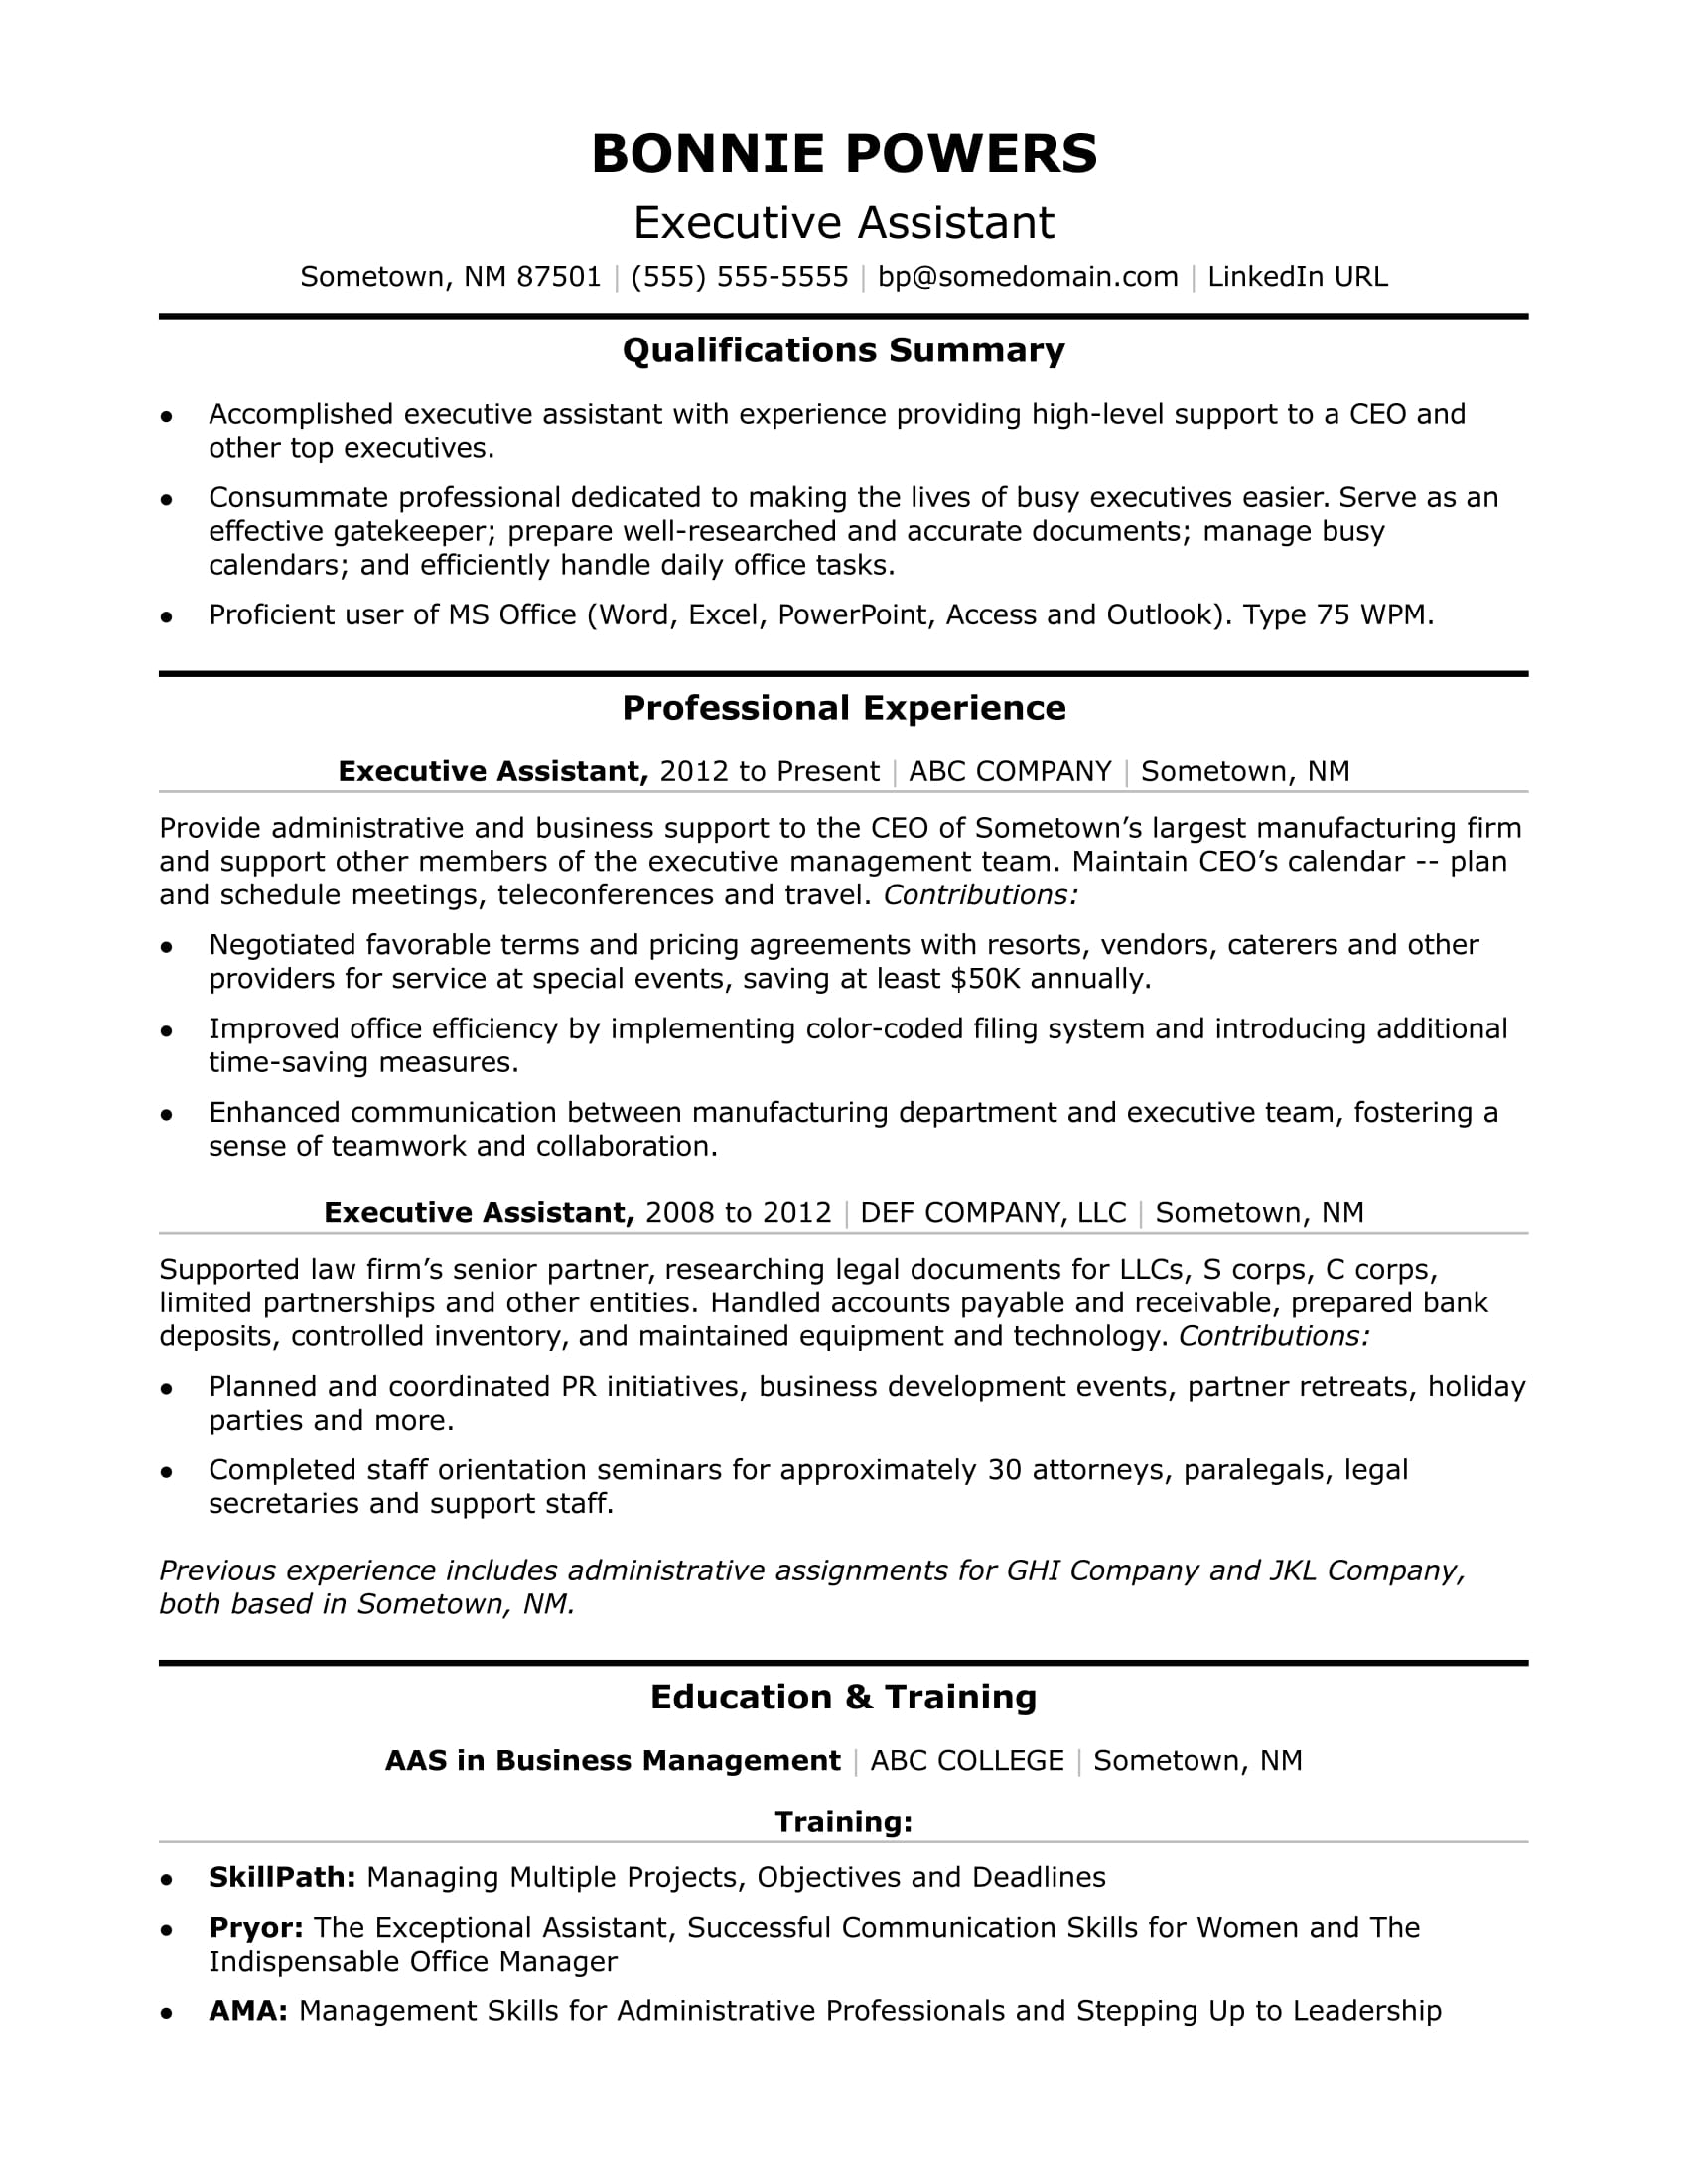 executive administrative assistant resume sample monster professional bullets examples Resume Professional Administrative Assistant Resume